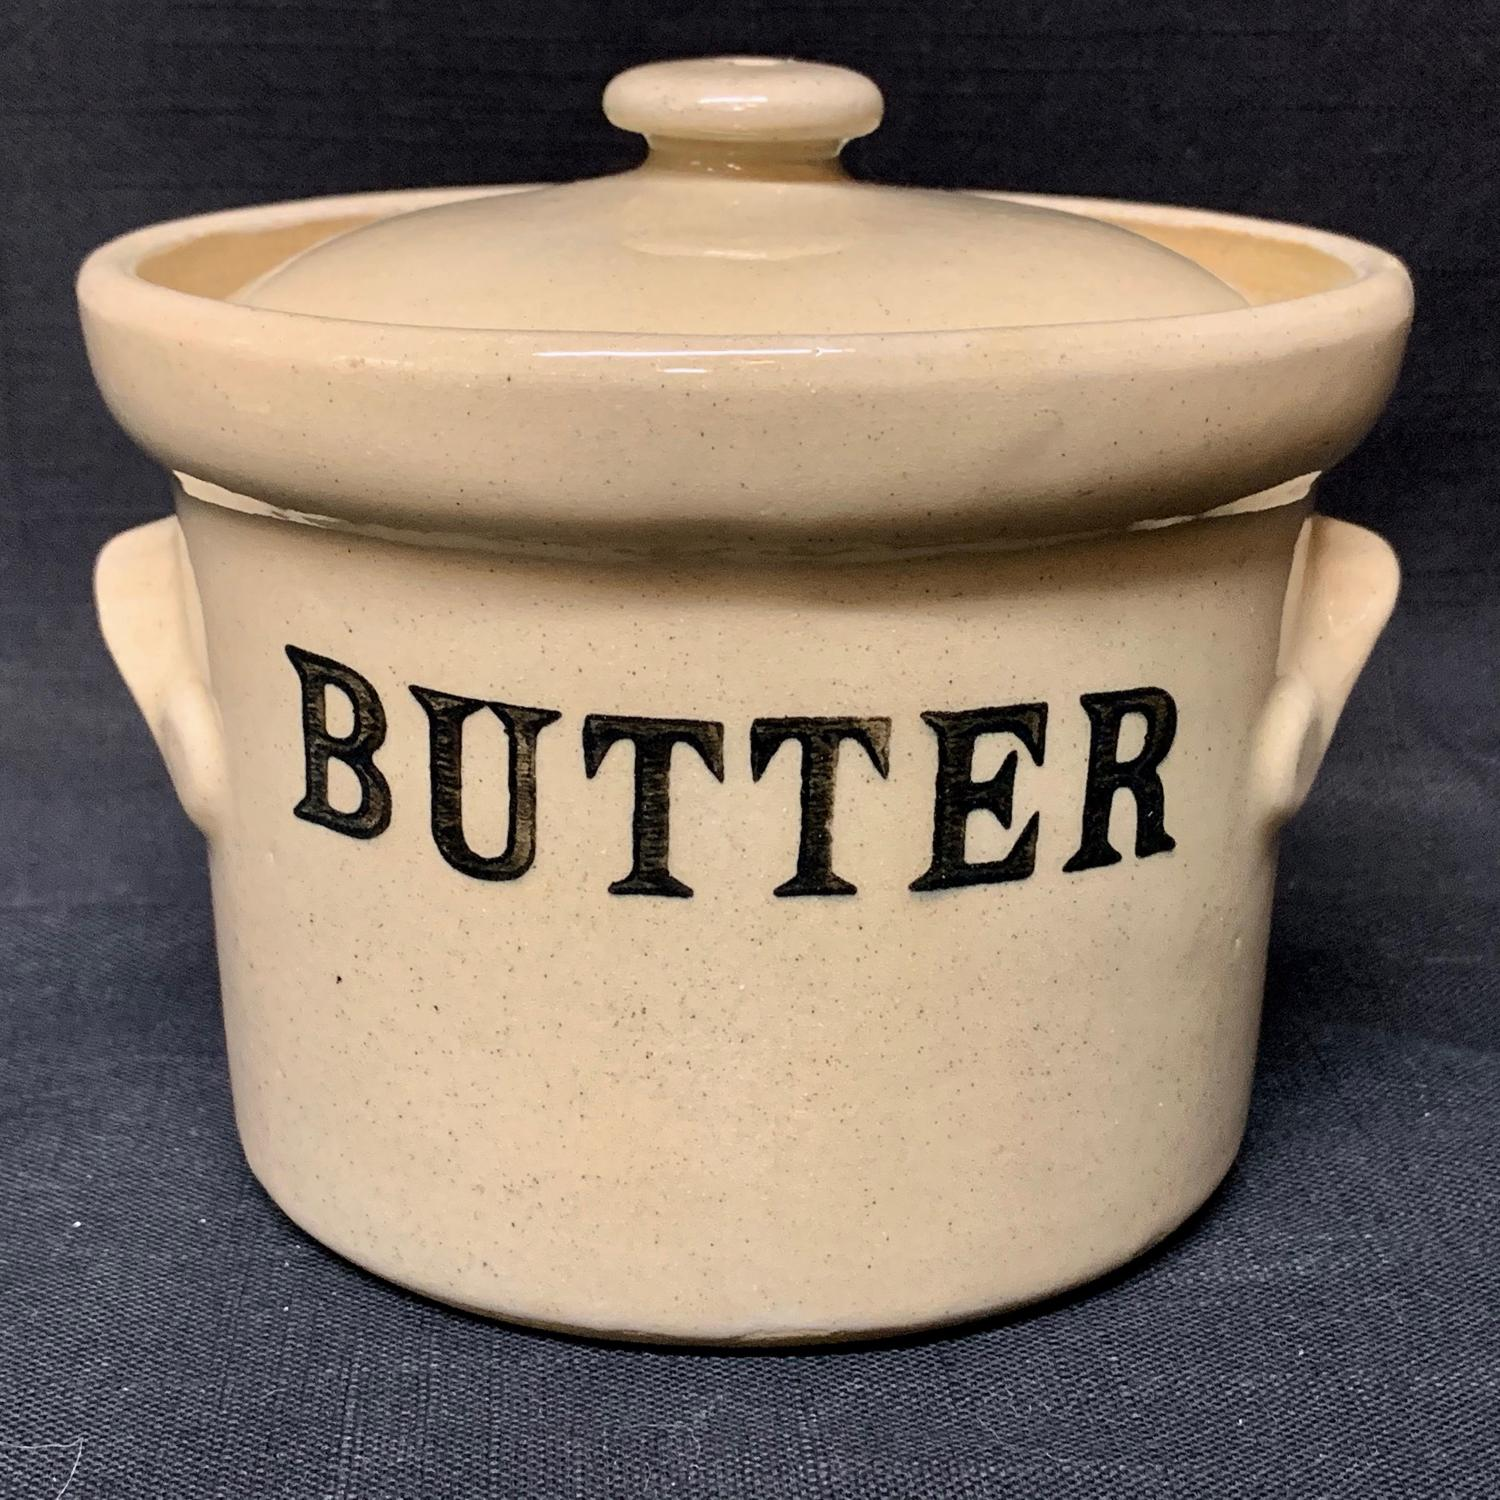 English Stoneware BUTTER Dairy Shop Tub Denby Potteries, England